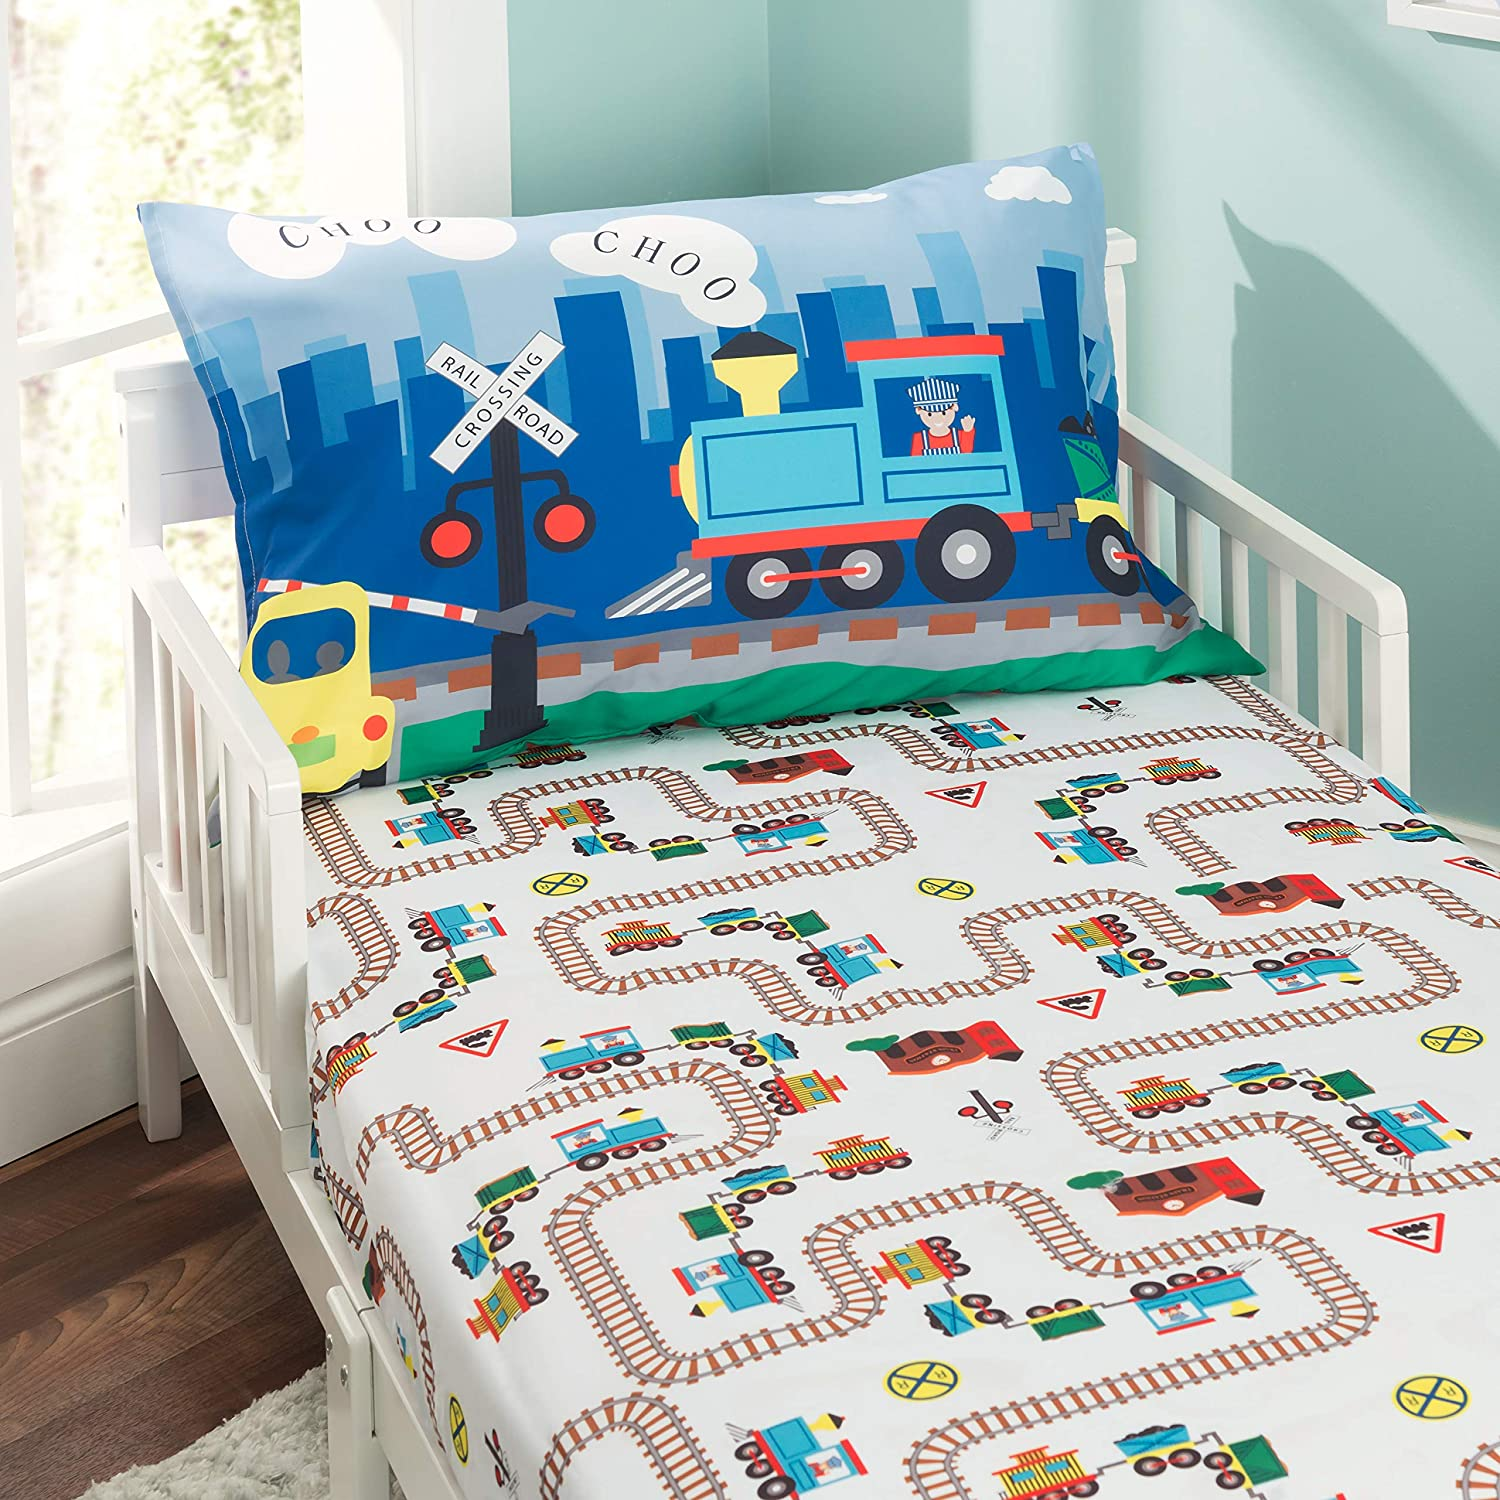 EVERYDAY KIDS Toddler Fitted Sheet and Pillowcase Set -Choo Choo Train- Soft Microfiber, Breathable and Hypoallergenic Toddler Sheet Set